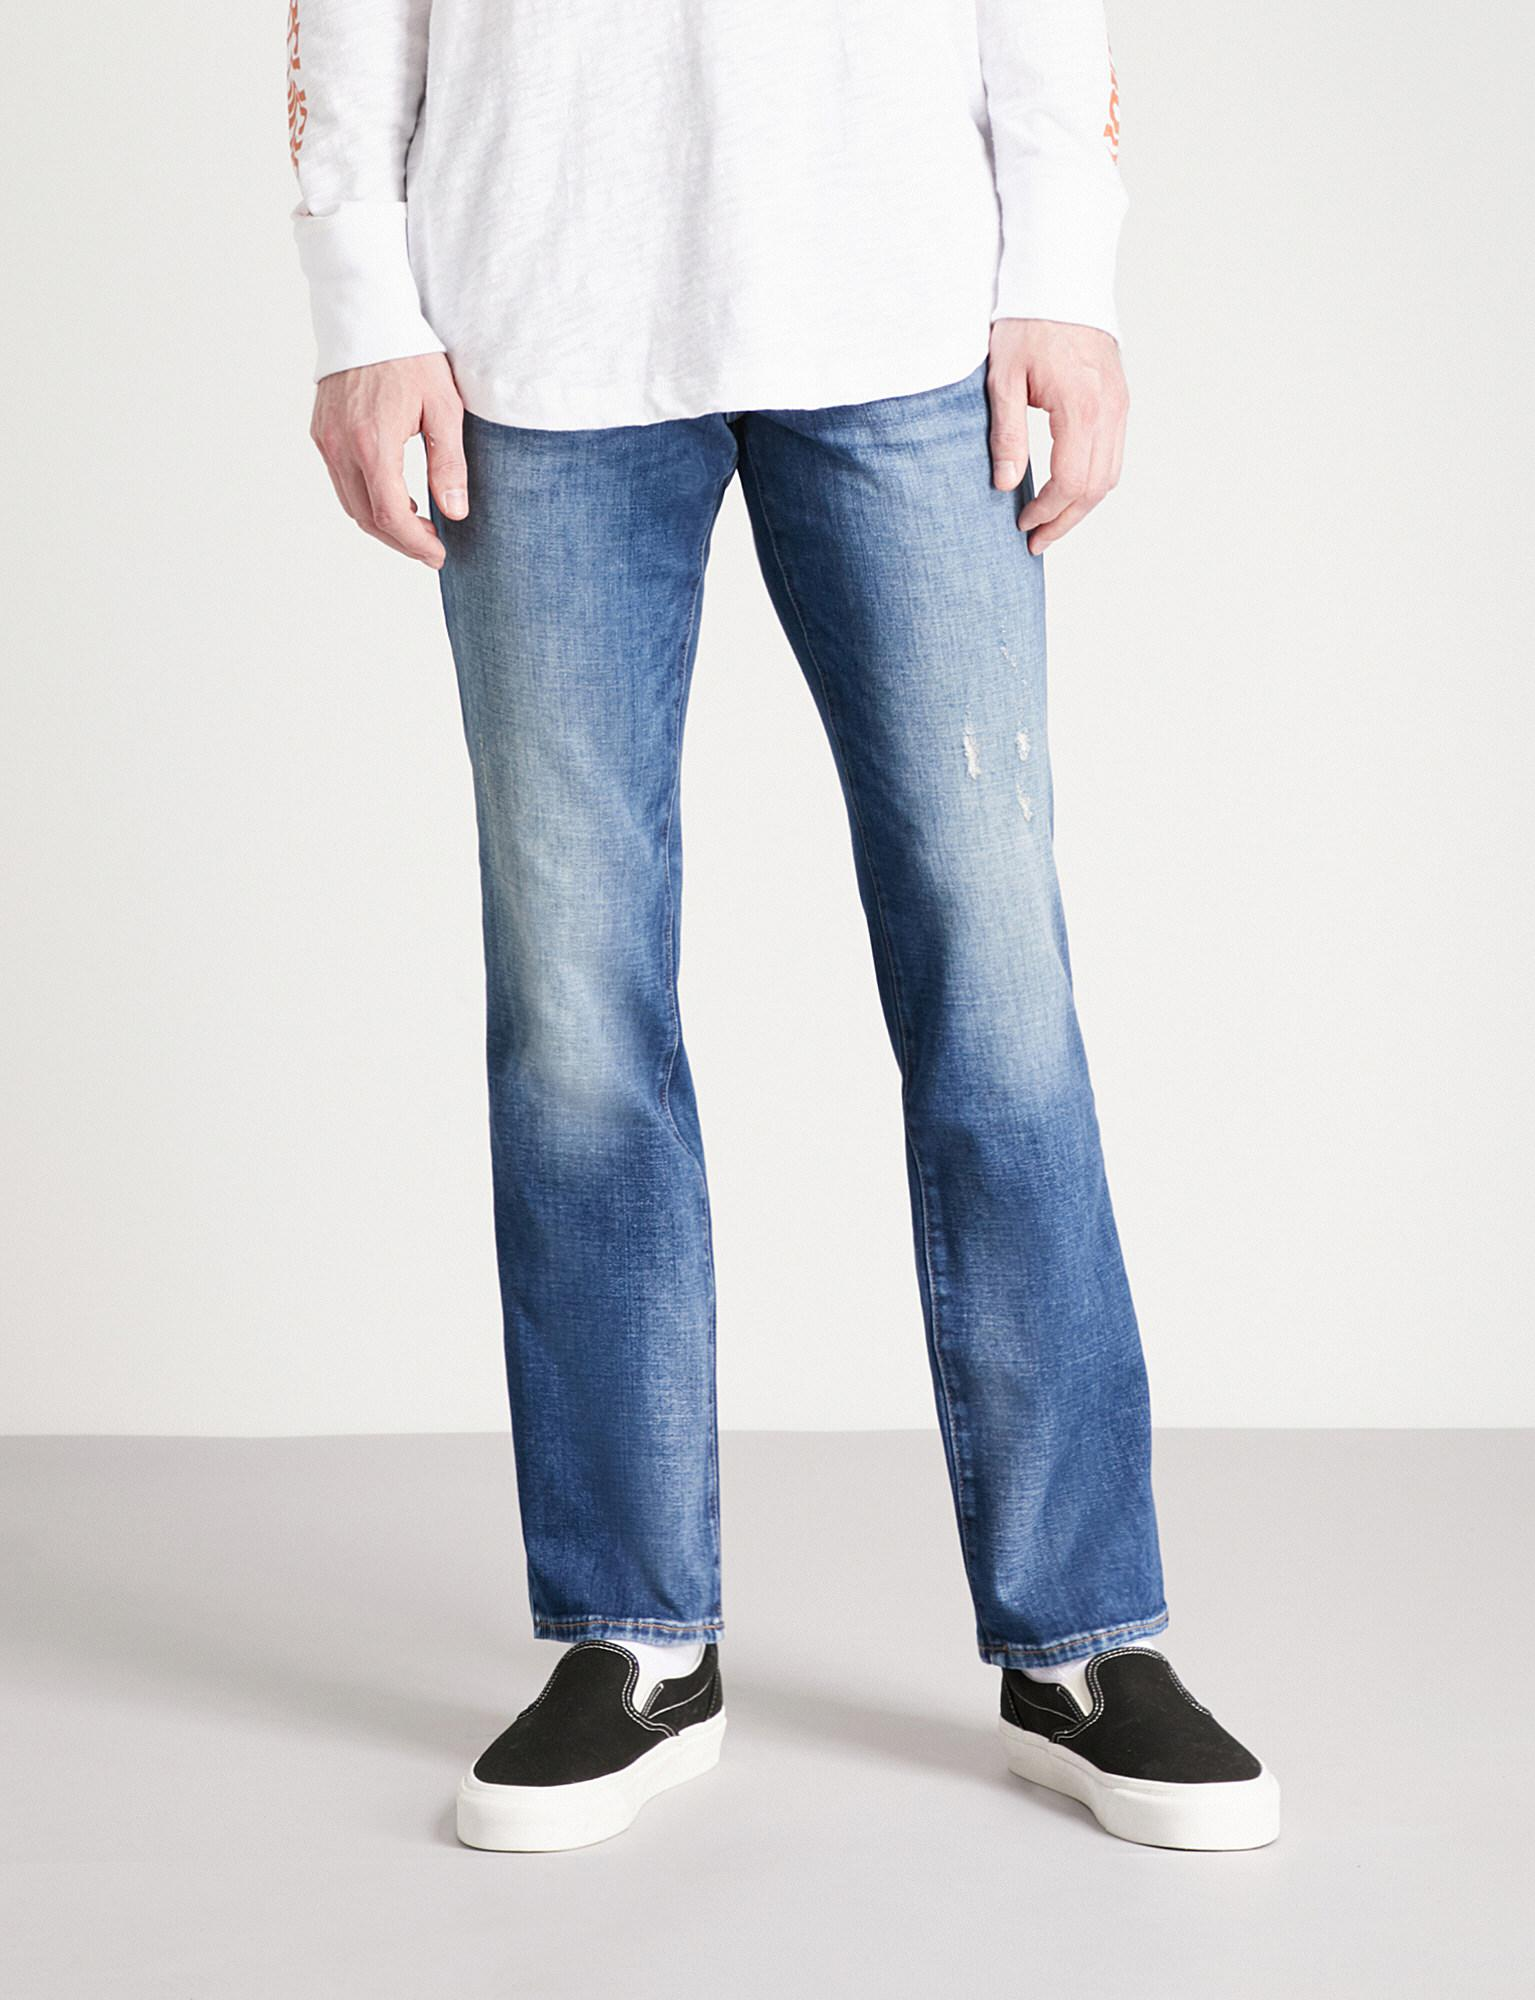 65970c9b60353 True Religion Ricky Relaxed-fit Slim Jeans in Blue for Men - Lyst